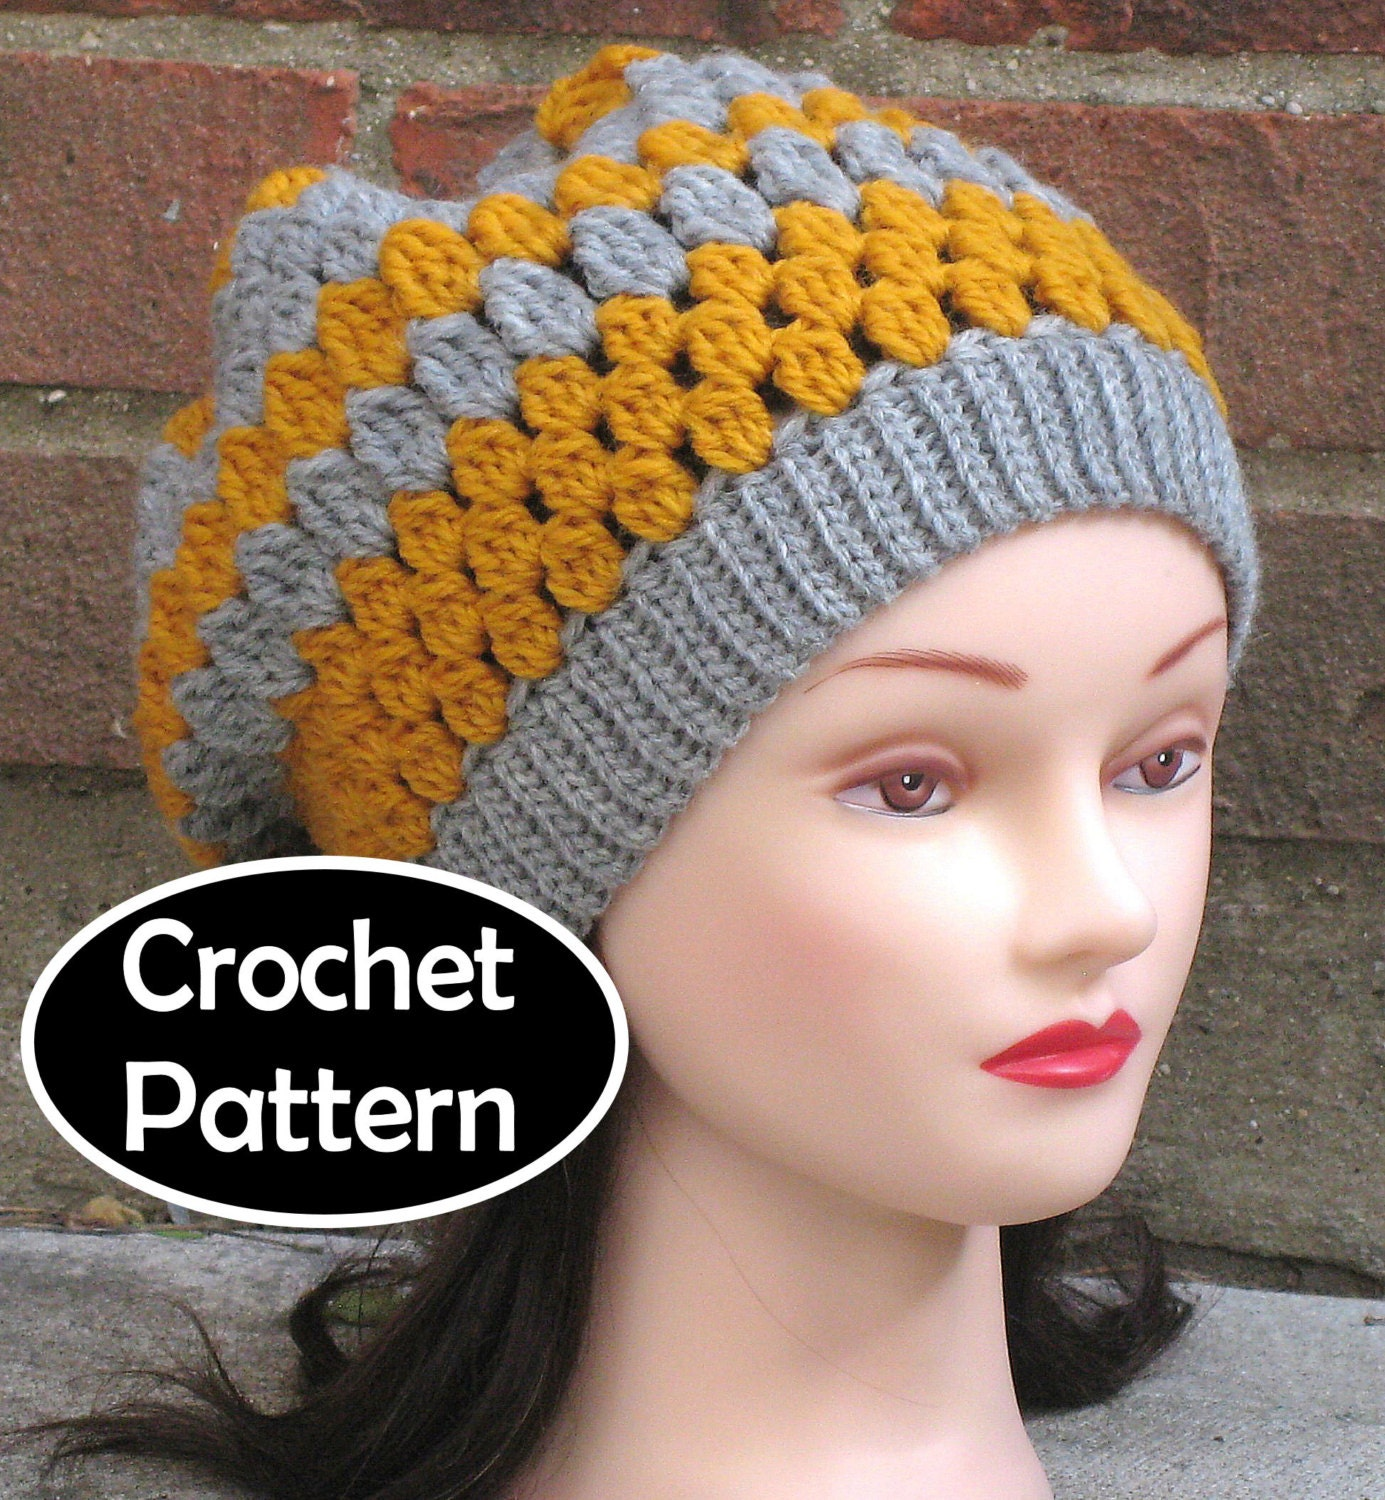 Crochet Hat Pattern Download : CROCHET HAT PATTERN Instant Download Ashlyn Slouchy Beanie